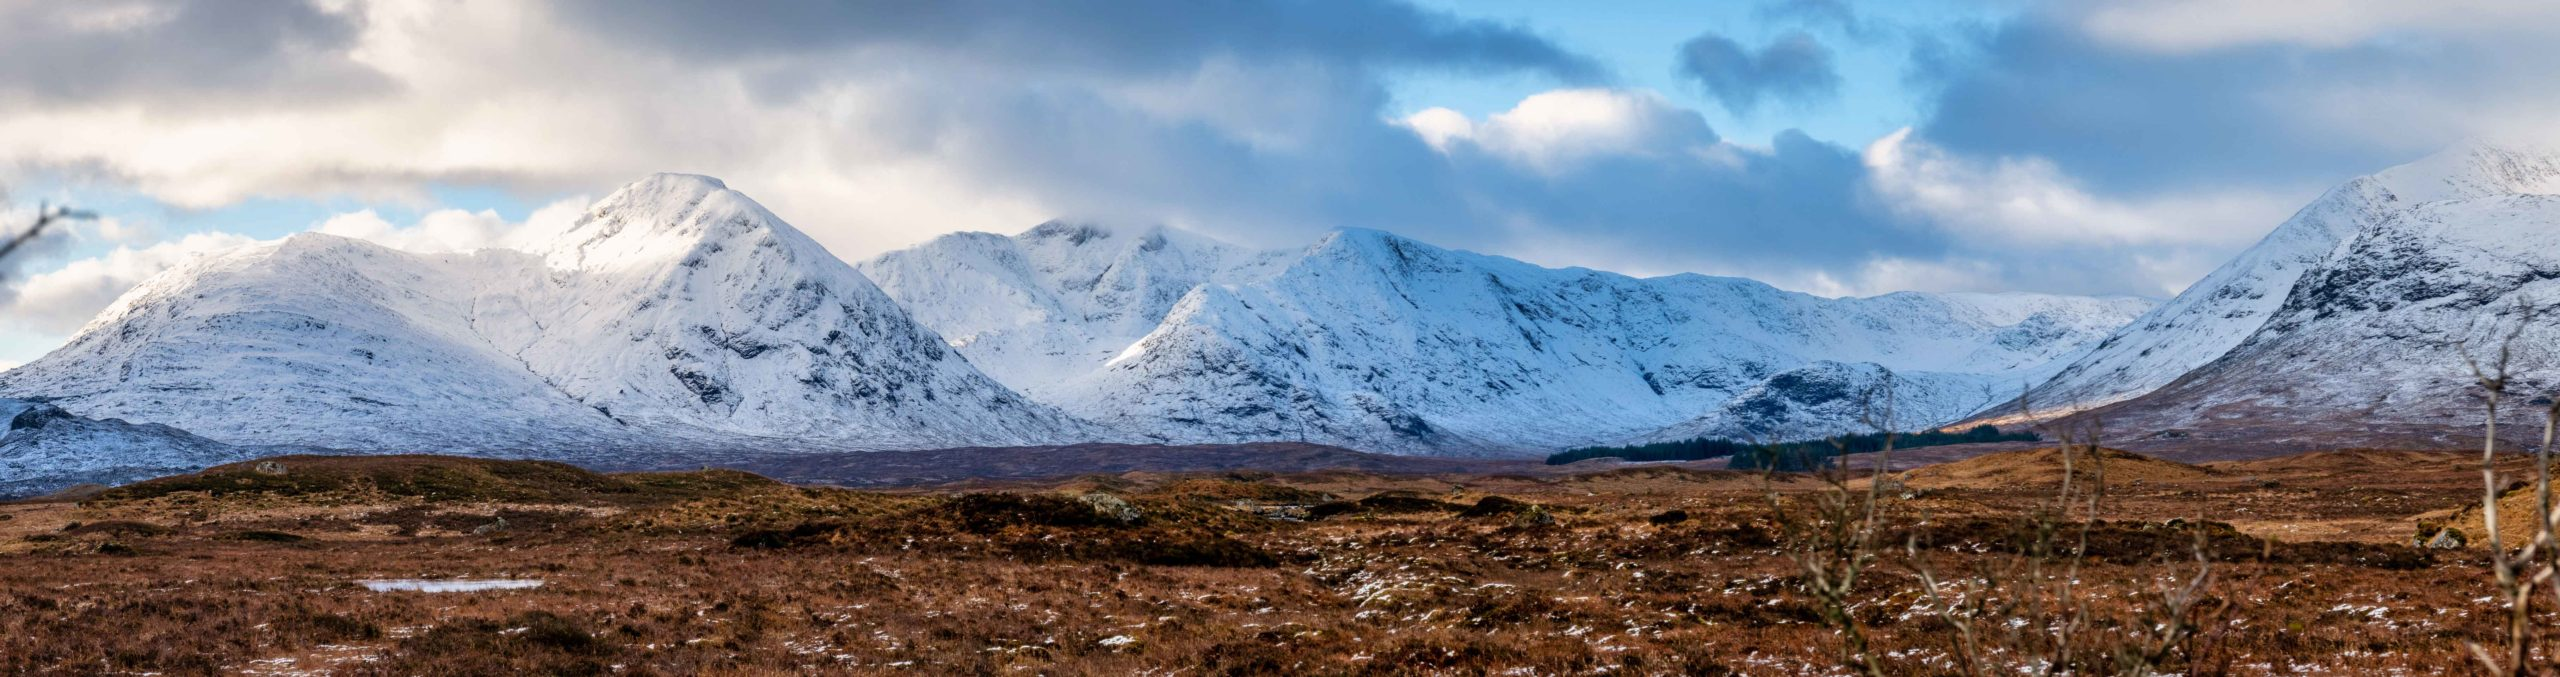 Stob A Choire Odhair from Black Mount.Shot by one of our Ben Nevis Guides